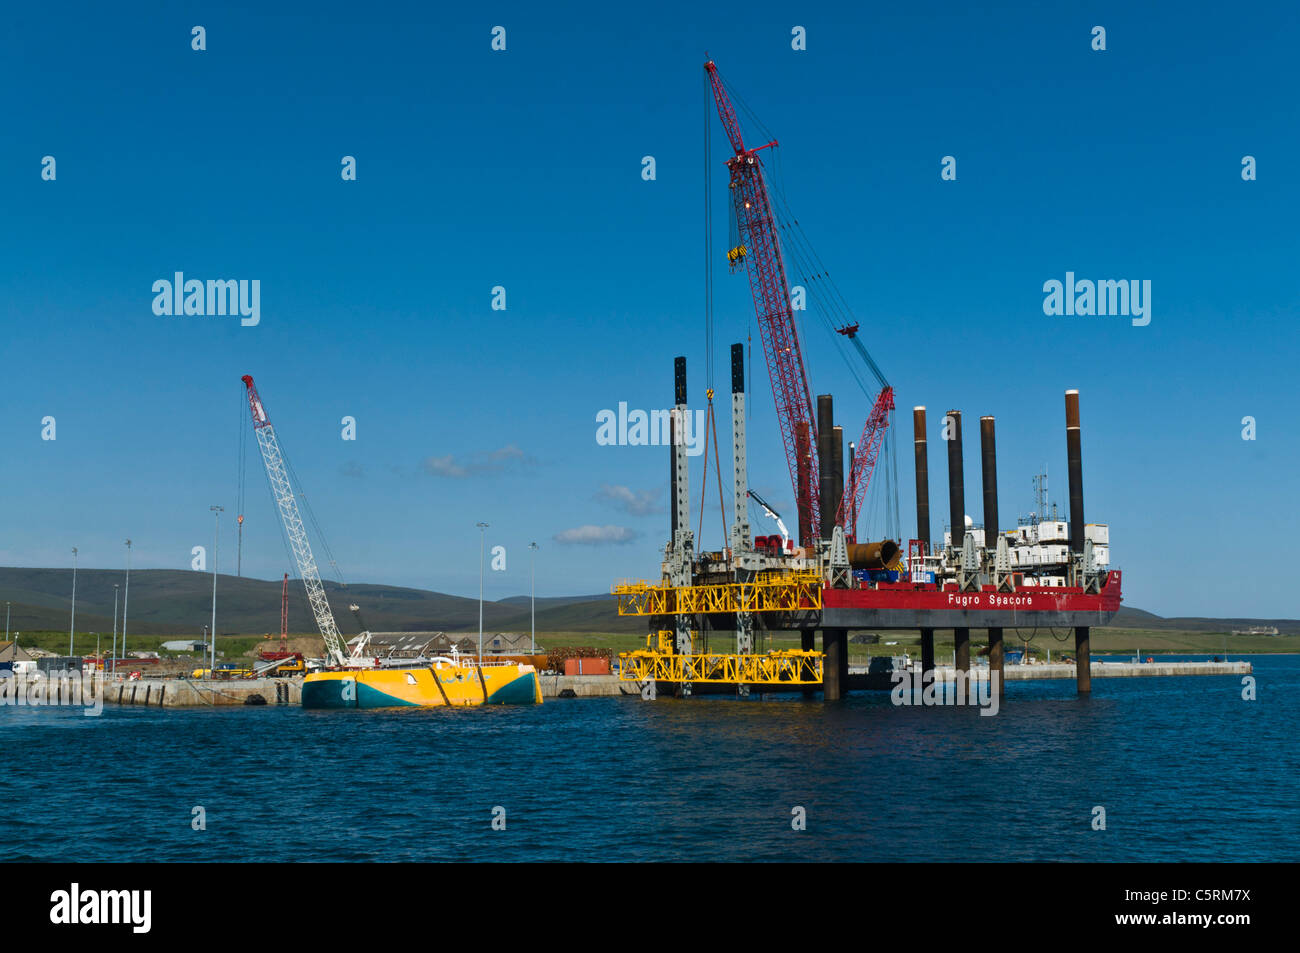 dh Lyness Pier HOY ORKNEY Fugro Seacore positioning platform rig and yellow Wellos Penguin renewables - Stock Image